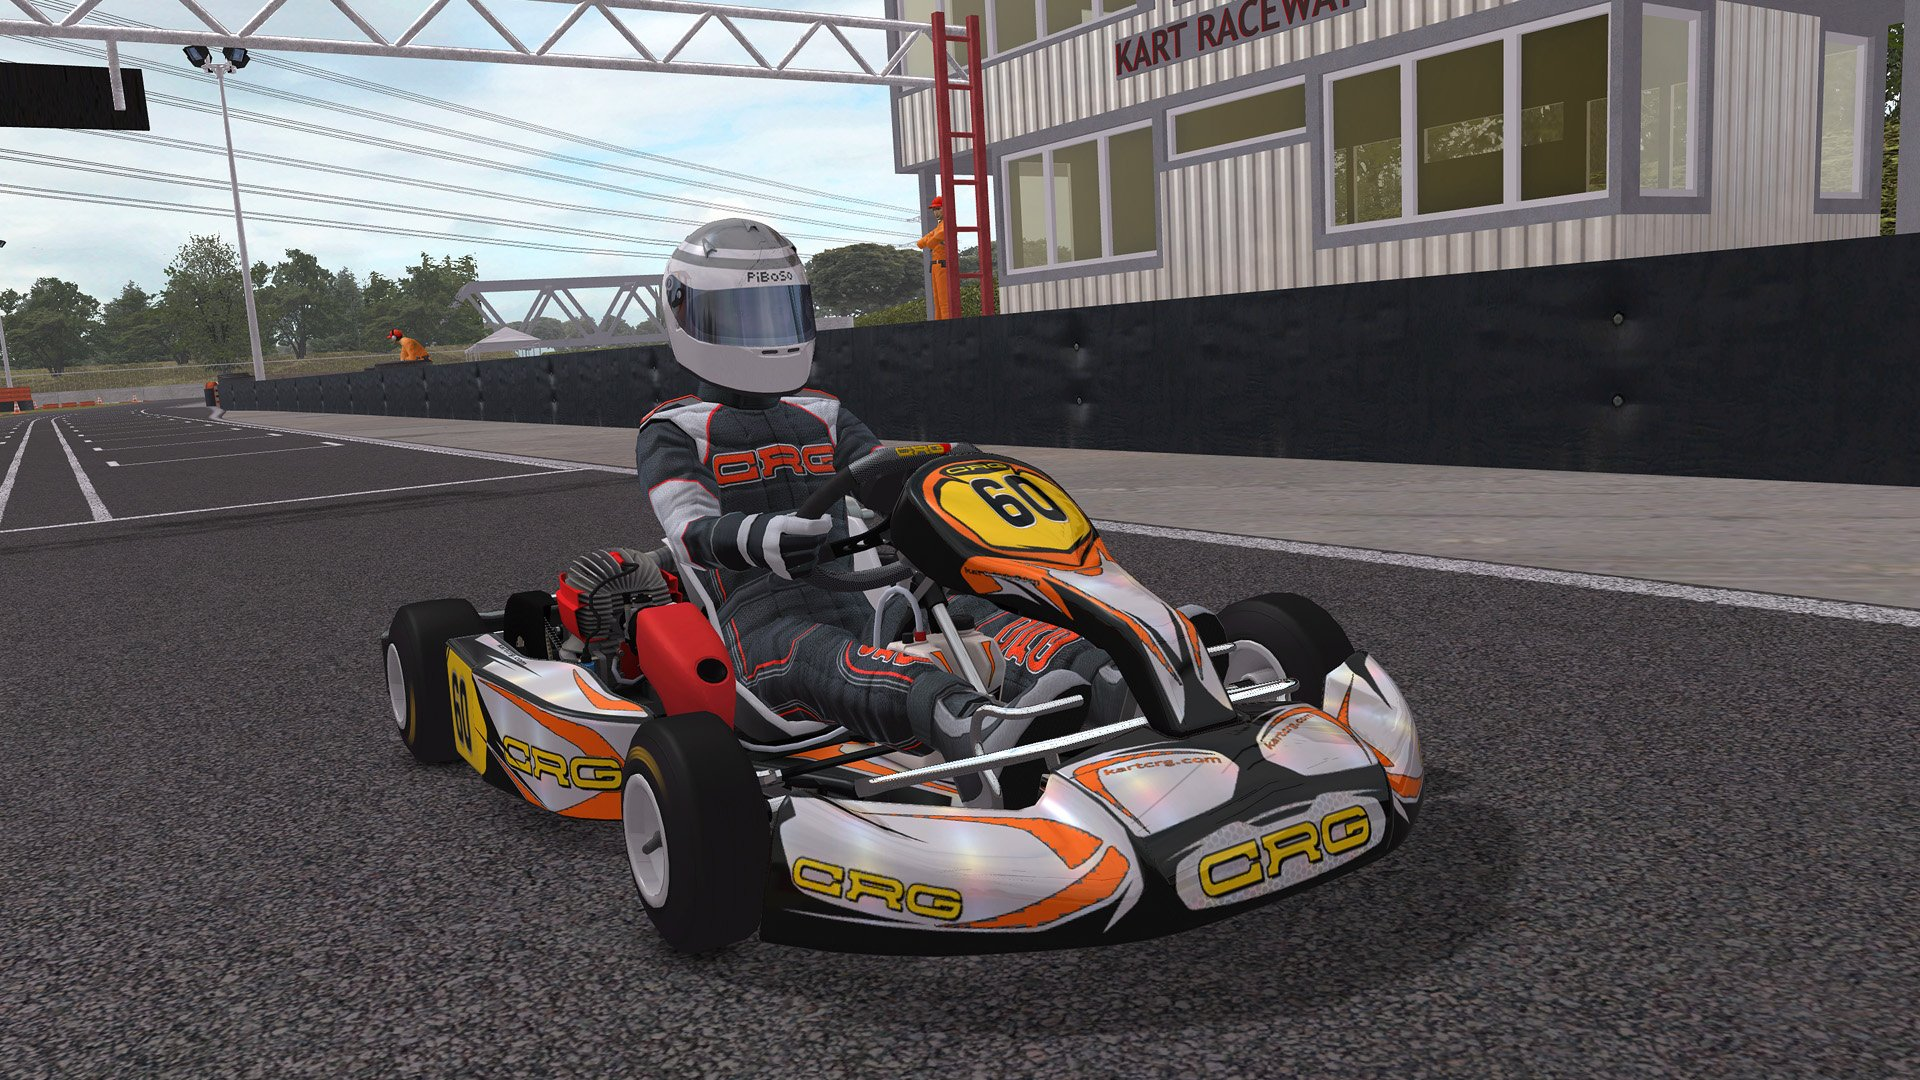 Kart Racing Pro kart with driver from front 2